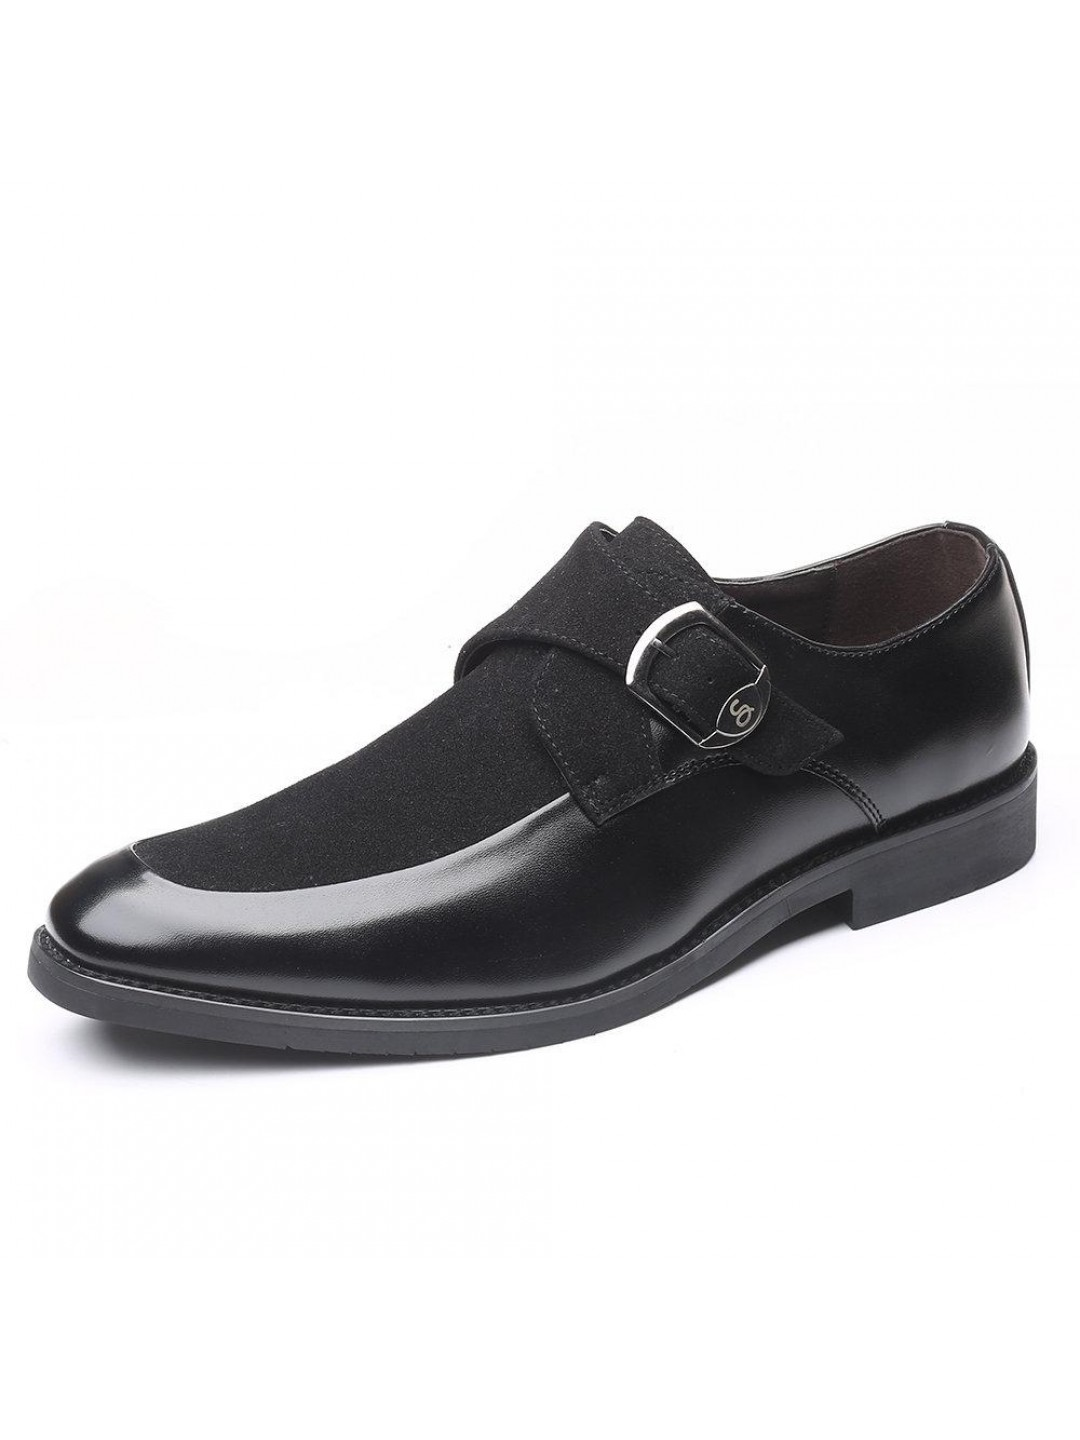 Men Leather Splicing Non Slip Metal Buckle Formal Dress Shoes